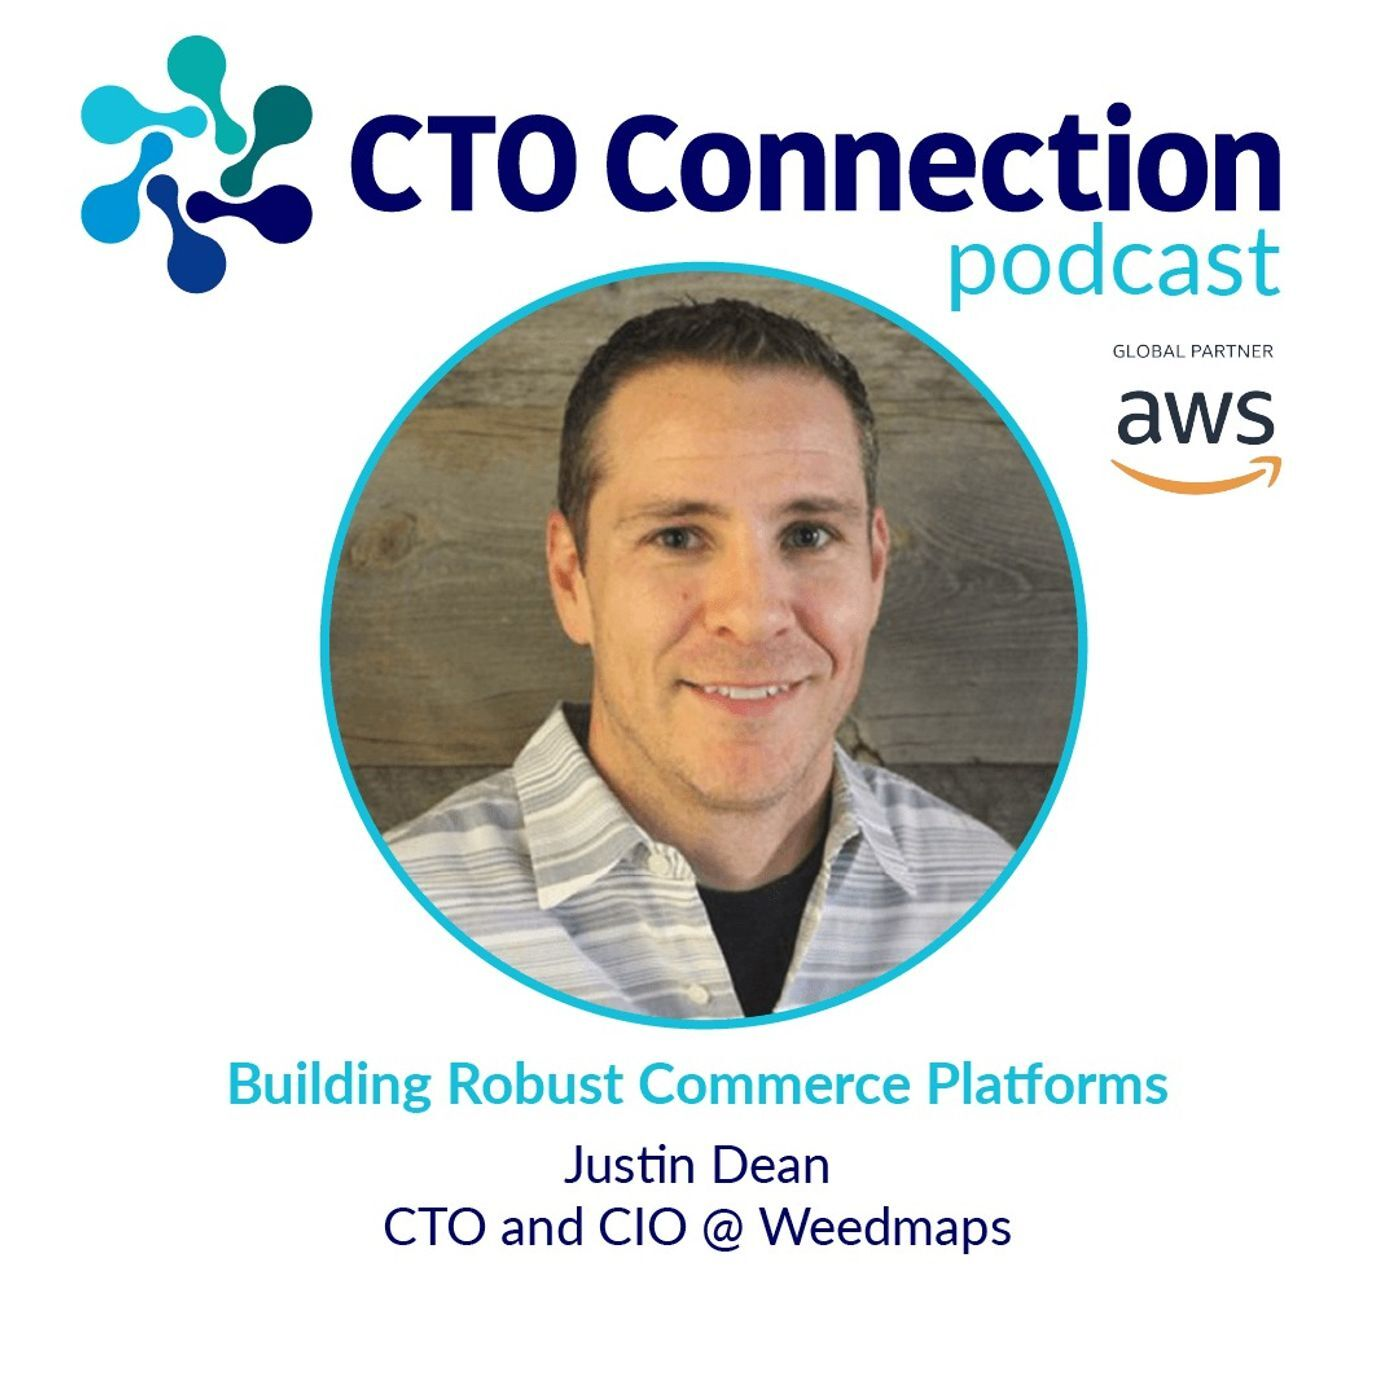 Building Robust Commerce Platforms with Justin Dean